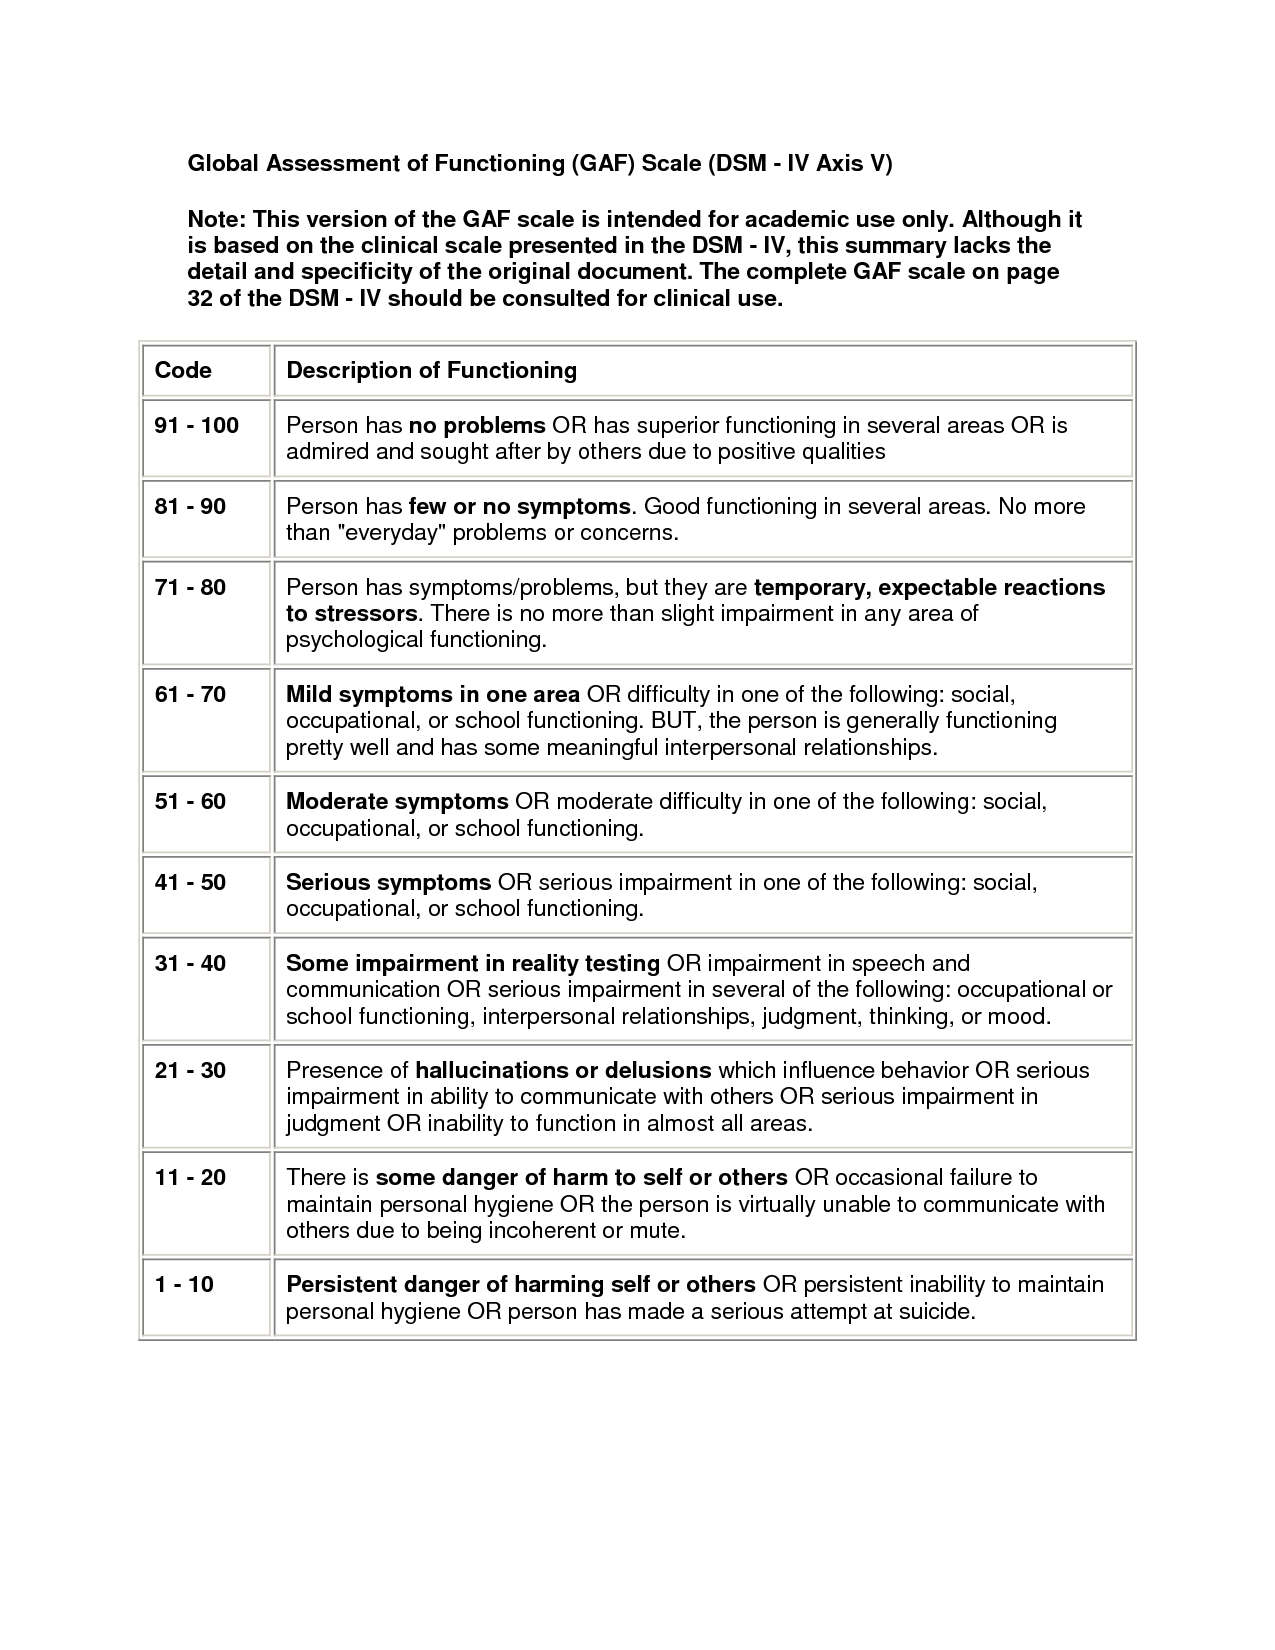 Gaf  Global Assessment Of Functioning Scale Axis V Of Diagnosis